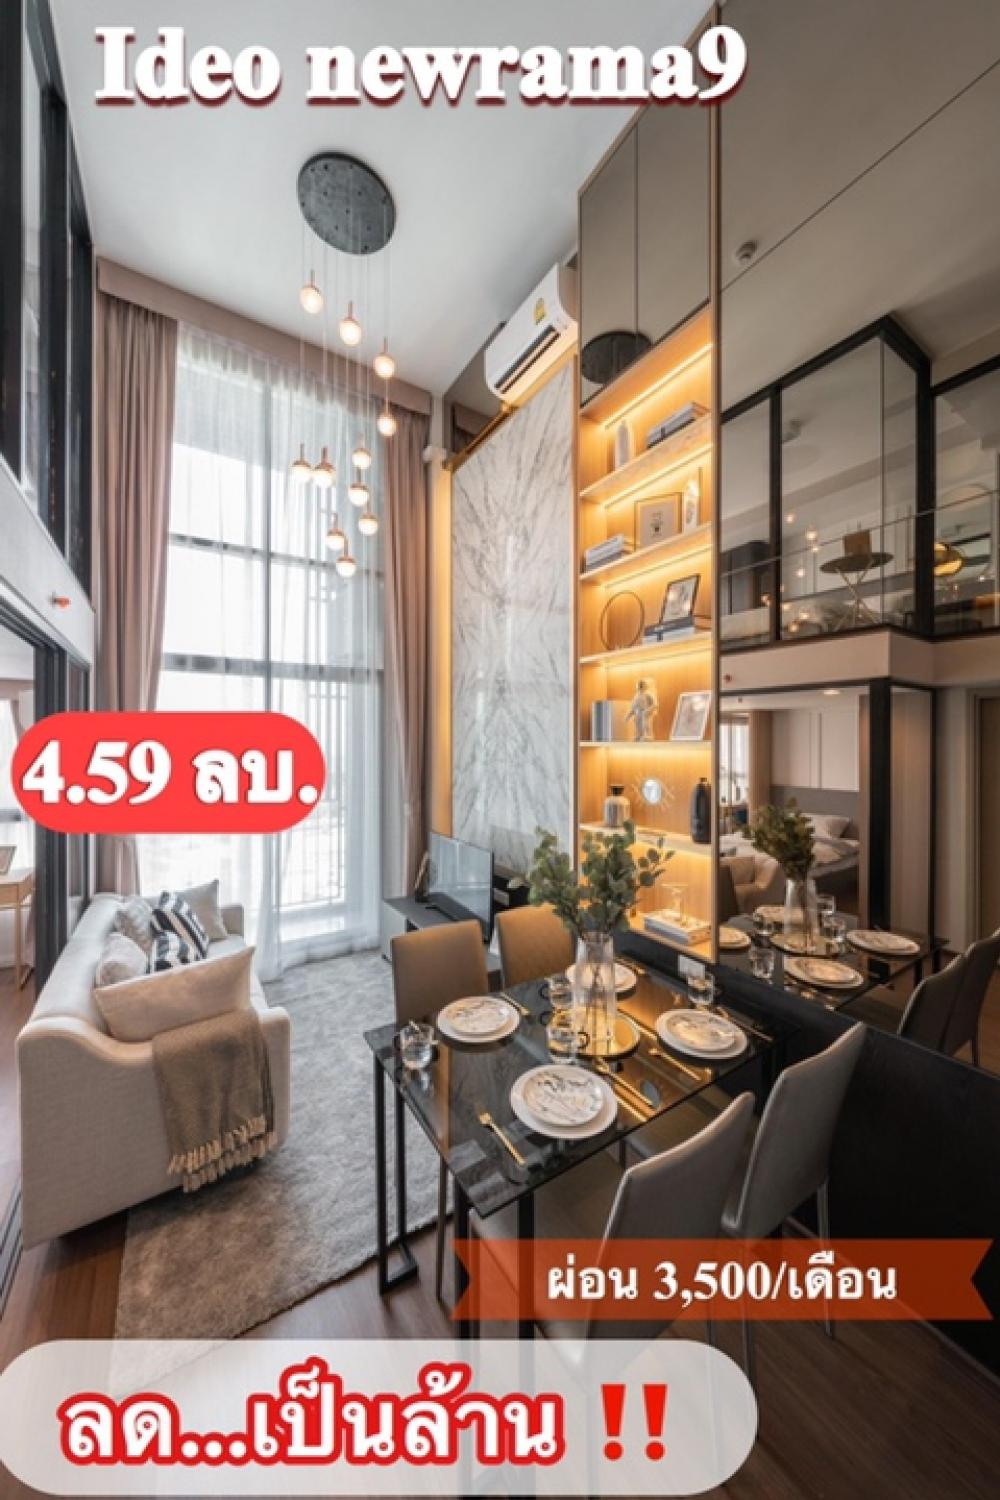 For SaleCondoRama9, RCA, Petchaburi : Selling at a loss, the room is out of transfer, easy installment 10,000 / month, new room, 1nd hand, free 0 baht down payment, ready to move in immediately, full loan